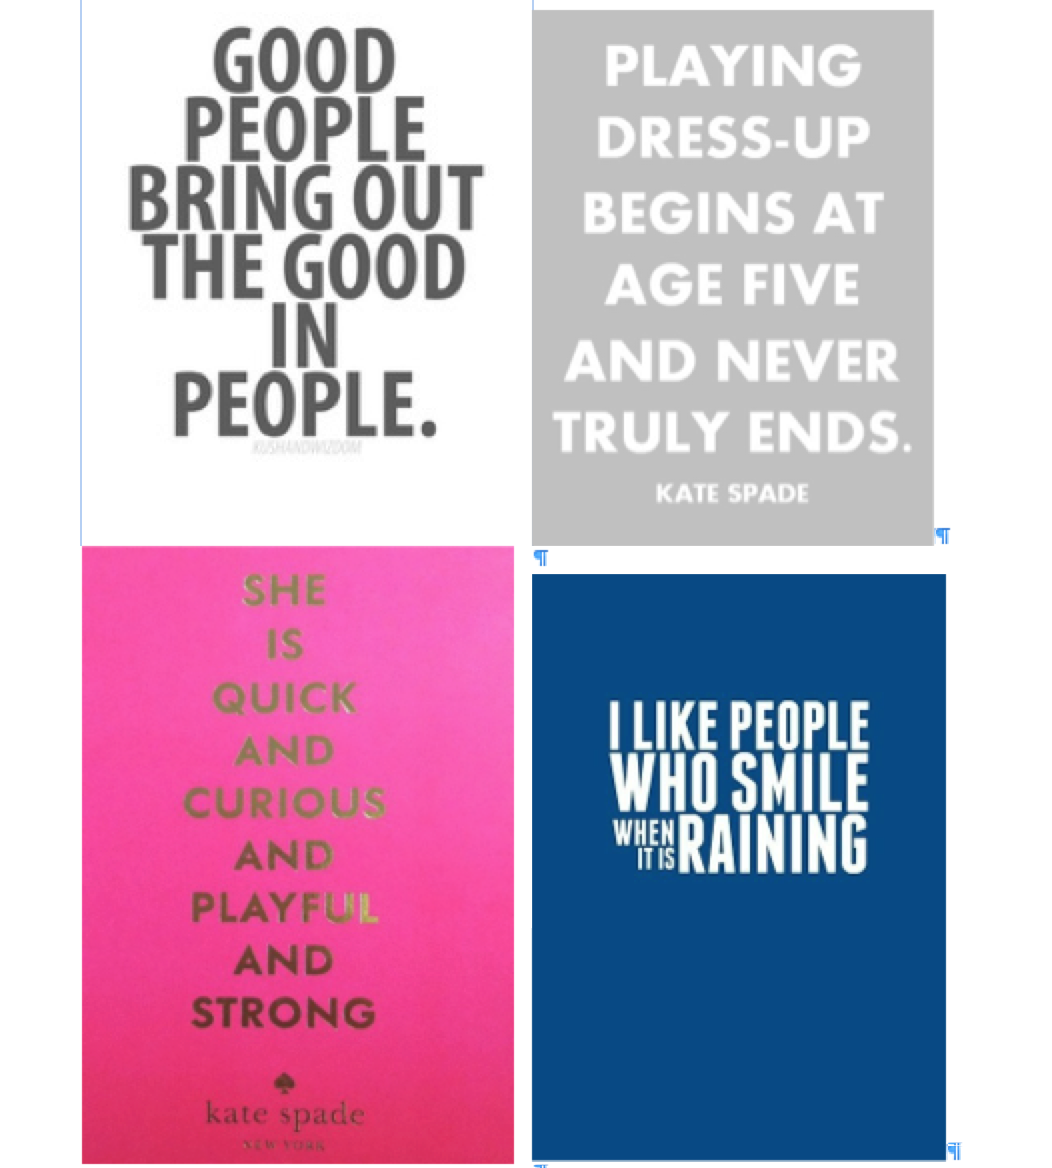 Kate Spade Quotes Kate Spade Quotes  Google Search  Kate Spade  Pinterest  Kate